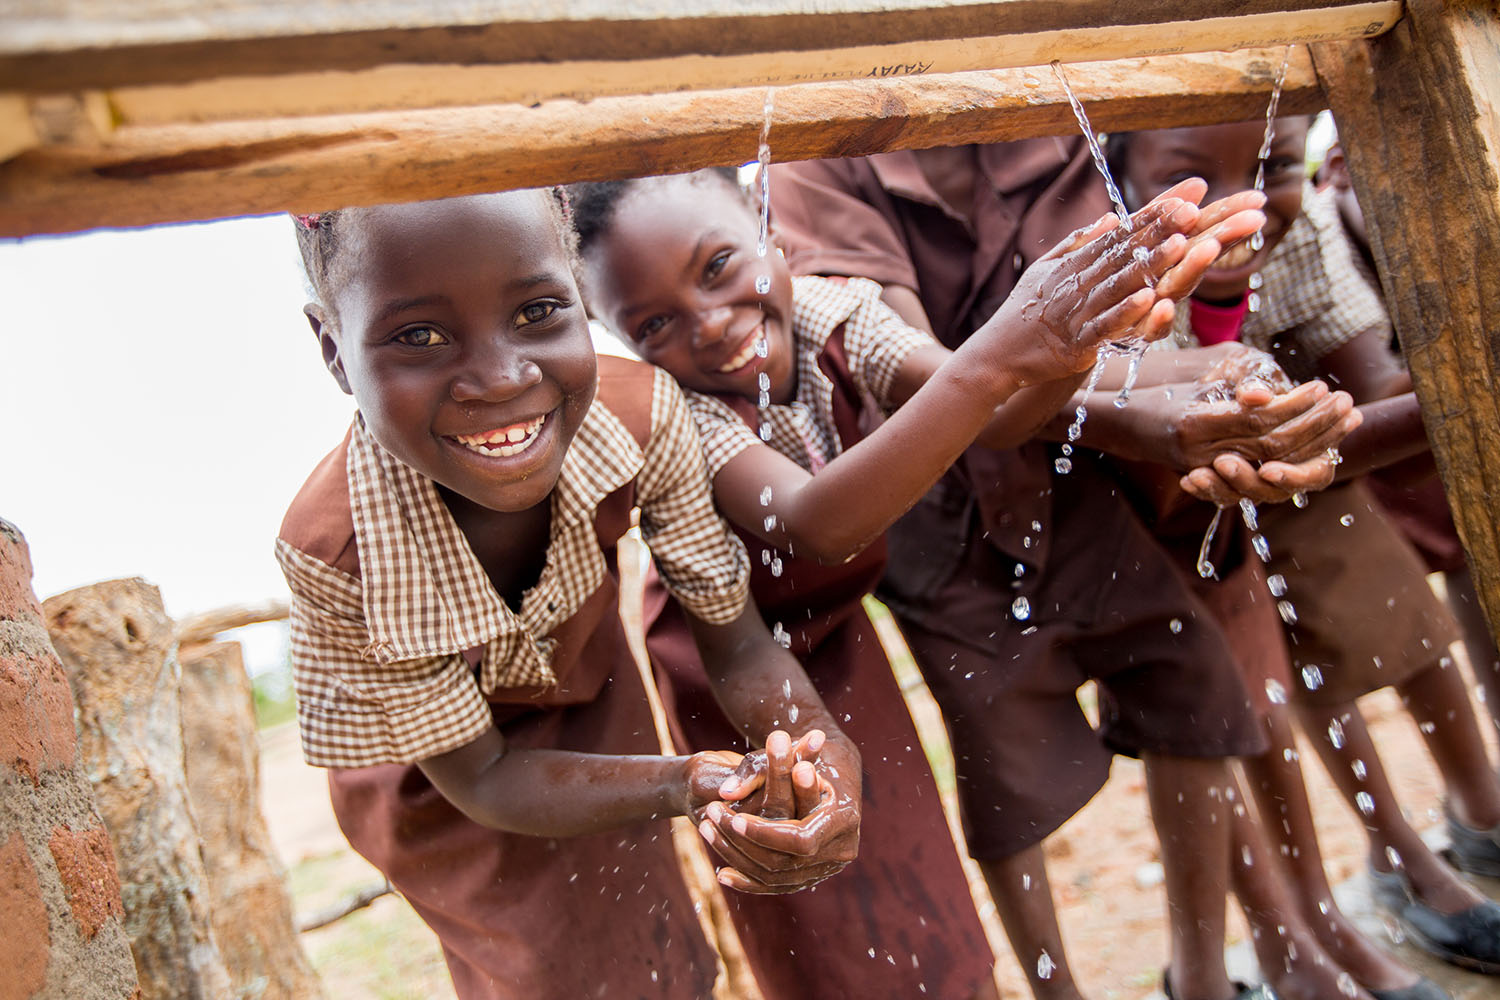 Access to water and sanitation is a basic human right. T is also a pre-condition for social and economic development. In Zambia, UNICEF strives to improve access to WASH for vulnerable children and women in rural communities, schools and health facilities